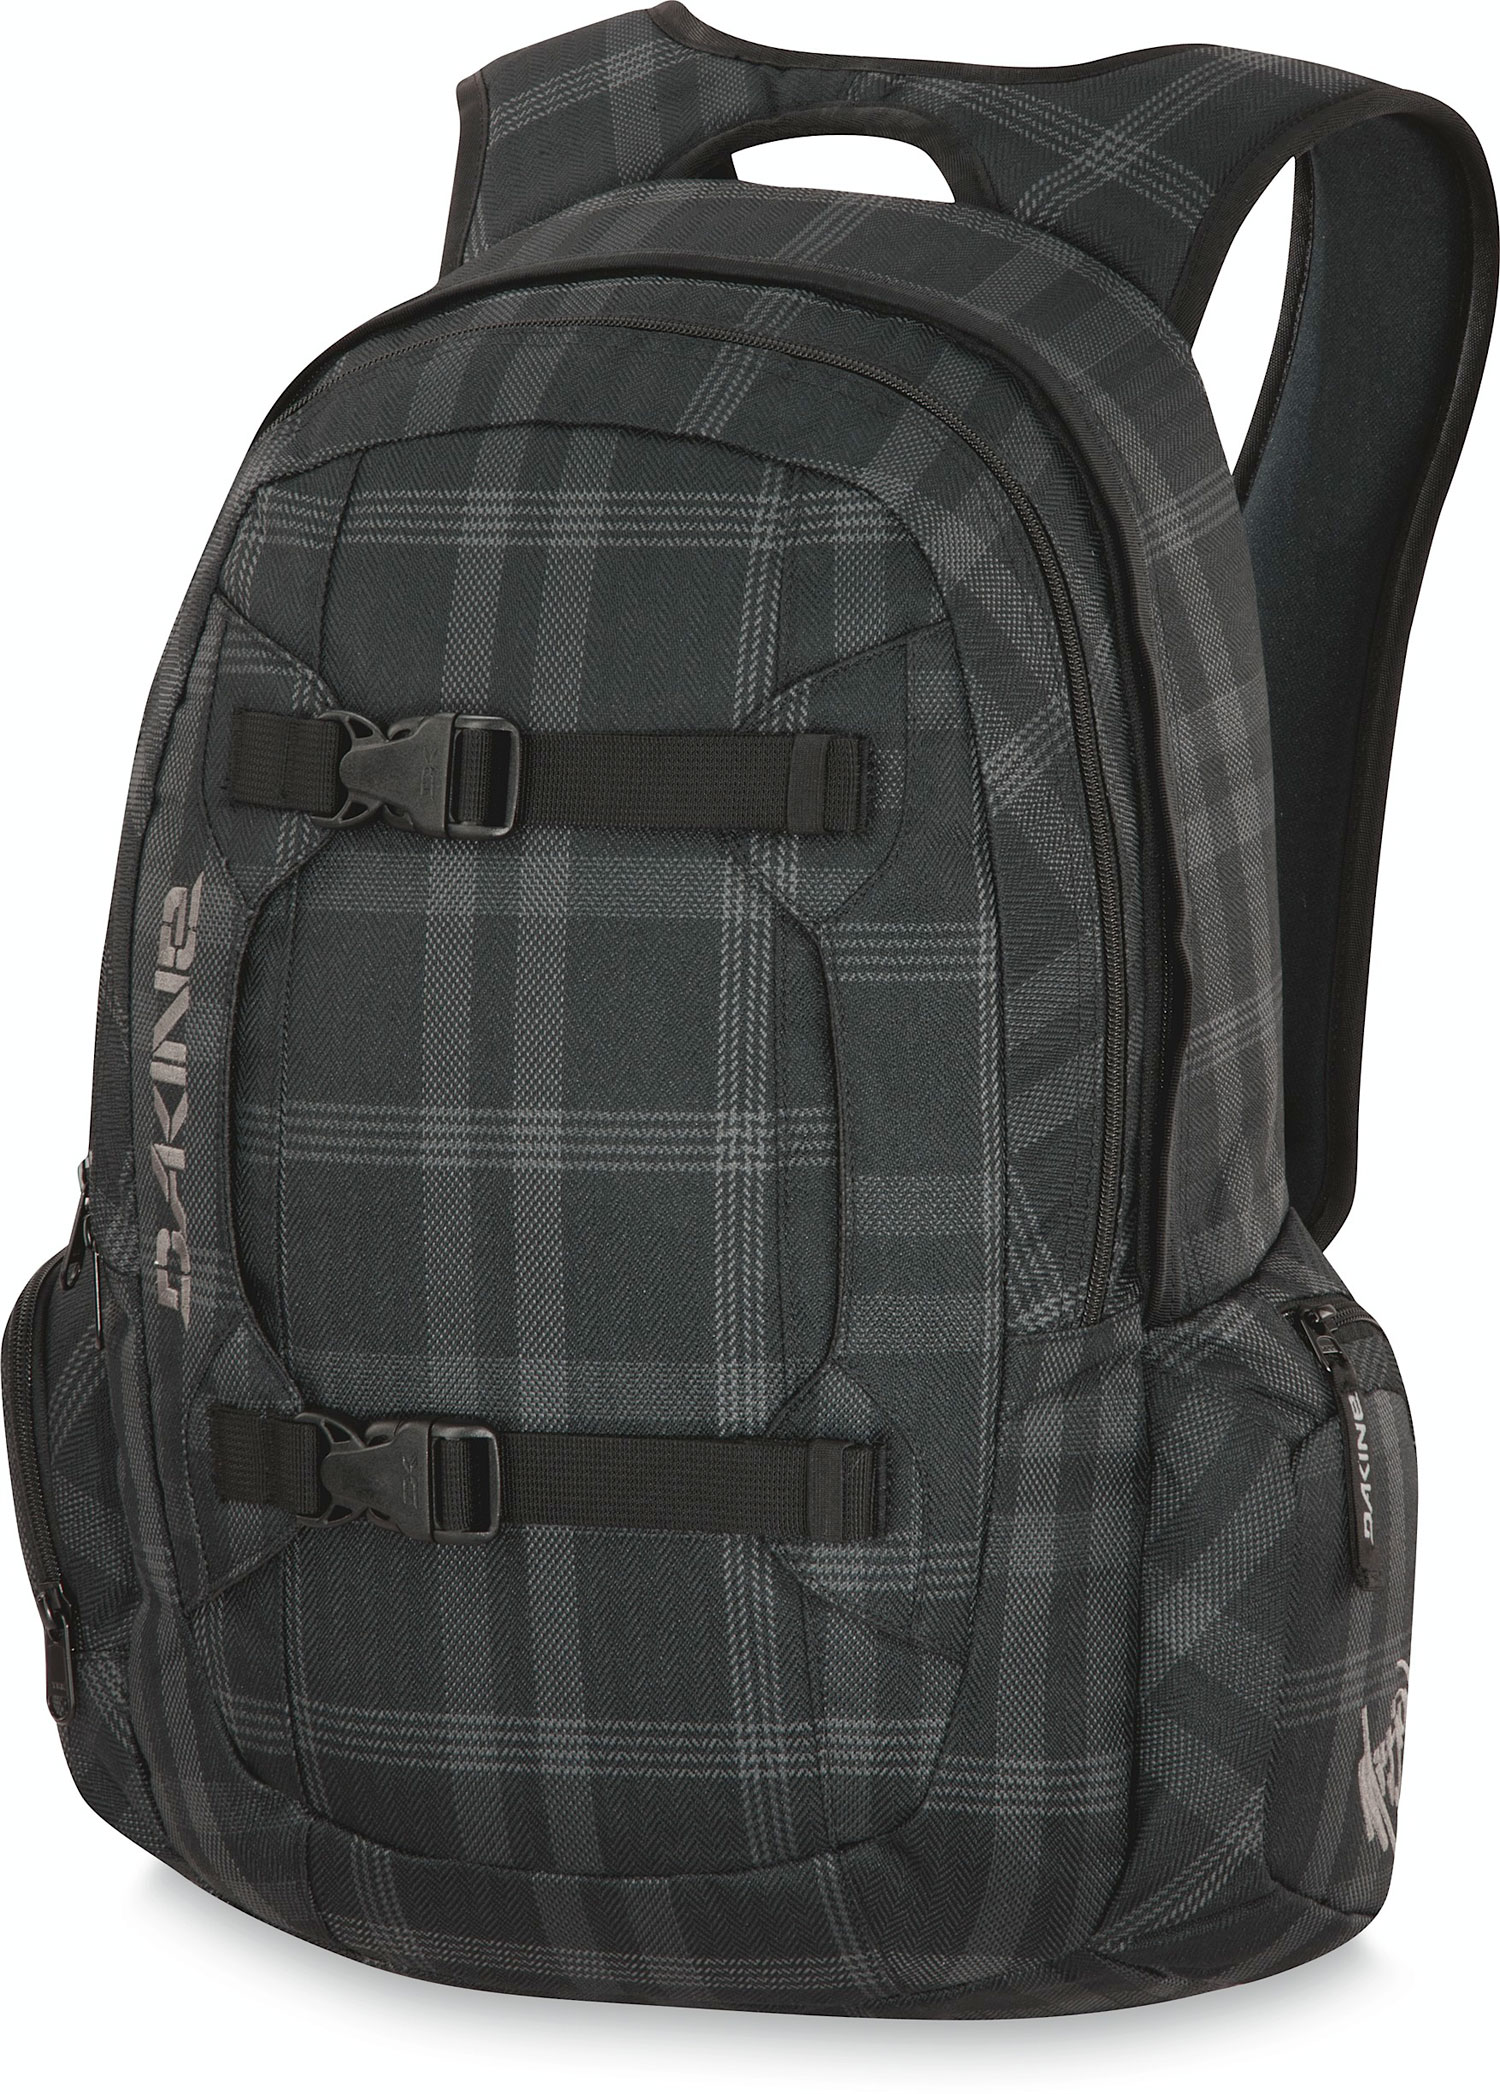 "Surf Key Features of the Dakine Mission 25L Backpack: 1500 cu. in. [ 25L ] 21 x 11 x 8"" [ 53 x 28 x 20cm ] 2 lbs. [ .9kg ] 600D Polyester Padded laptop sleeve Fits most 15"" laptops Vertical board carry straps Organizer pocket Plush lined sunglass pocket Plush lined goggle pocket Padded waist belt - $48.95"